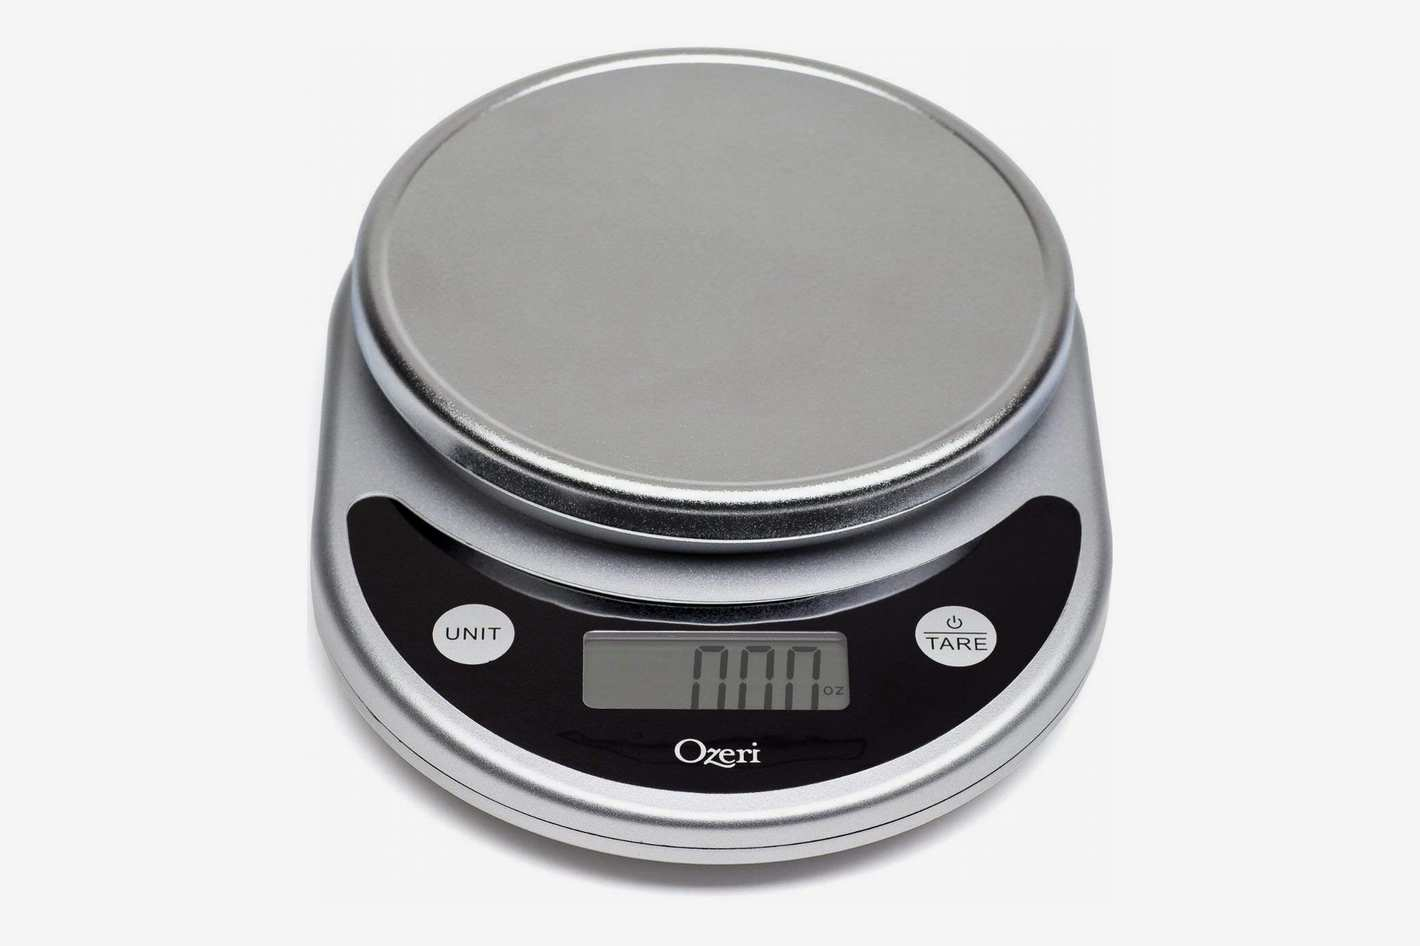 Image result for kitchen scale